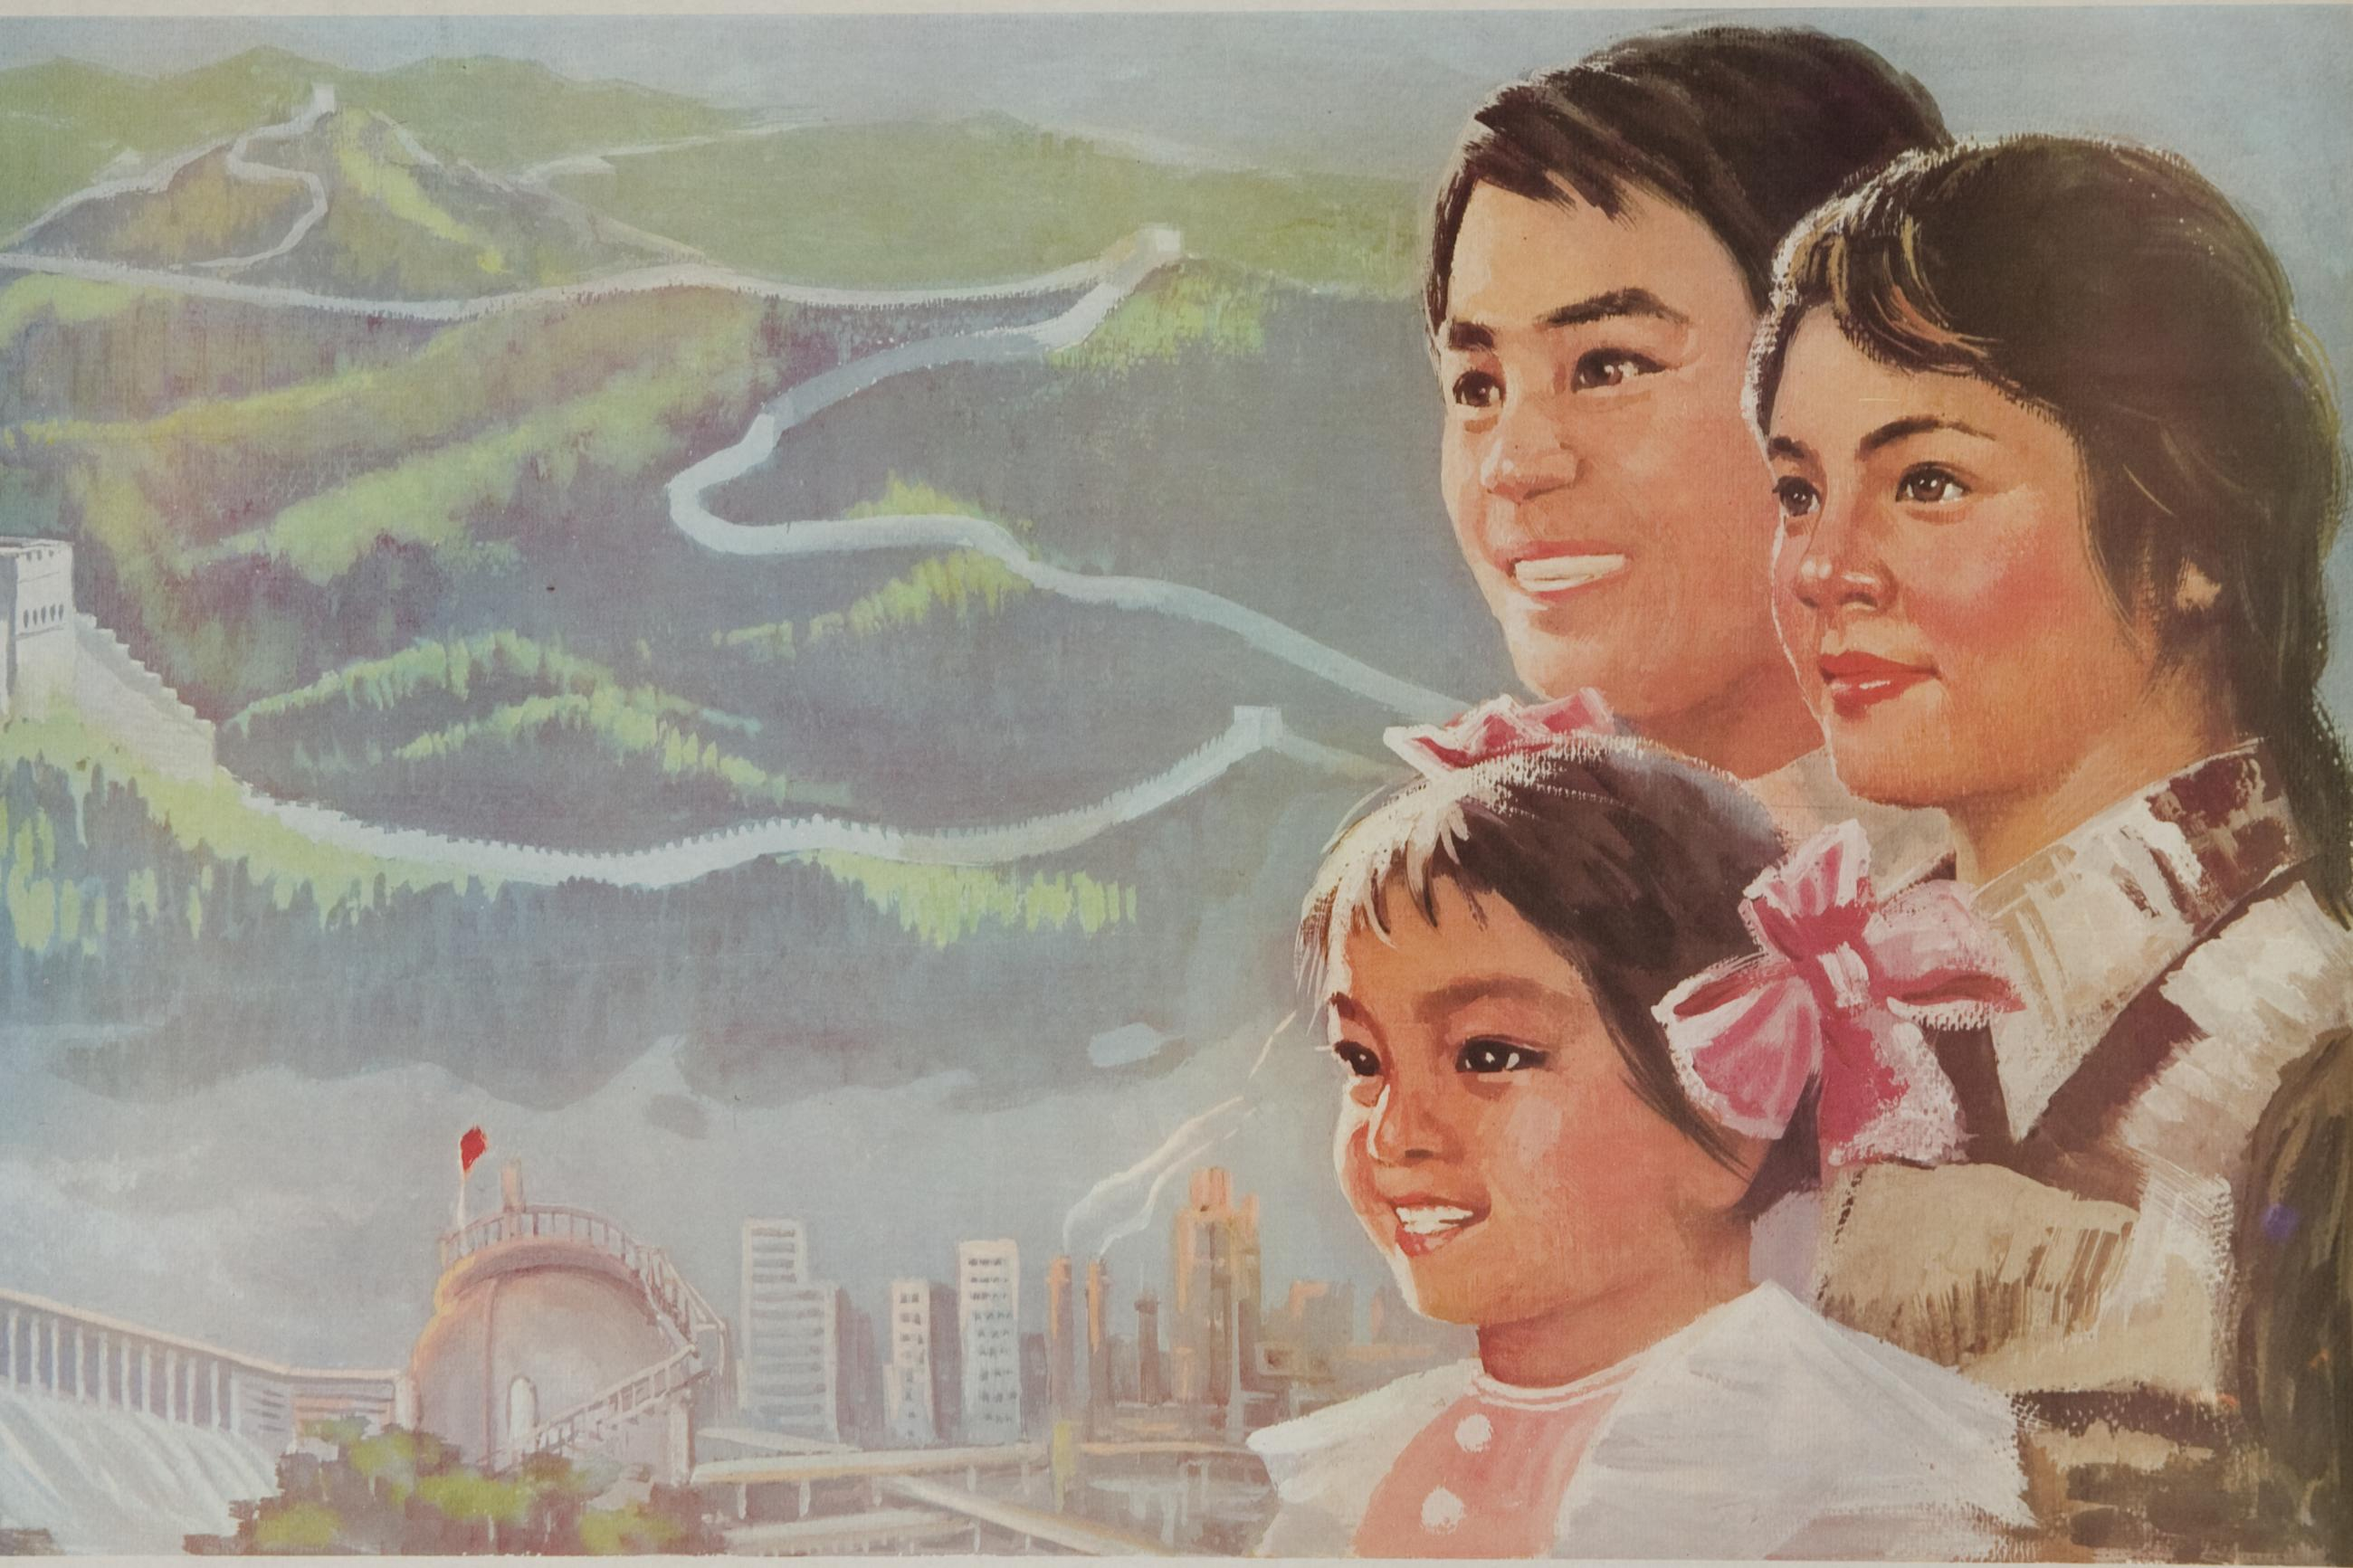 """An archival Chinese Cultural Revolution poster reads, """"If You Want to Prosper, You Must Control The Population,"""" promoting China's former one-child plan."""